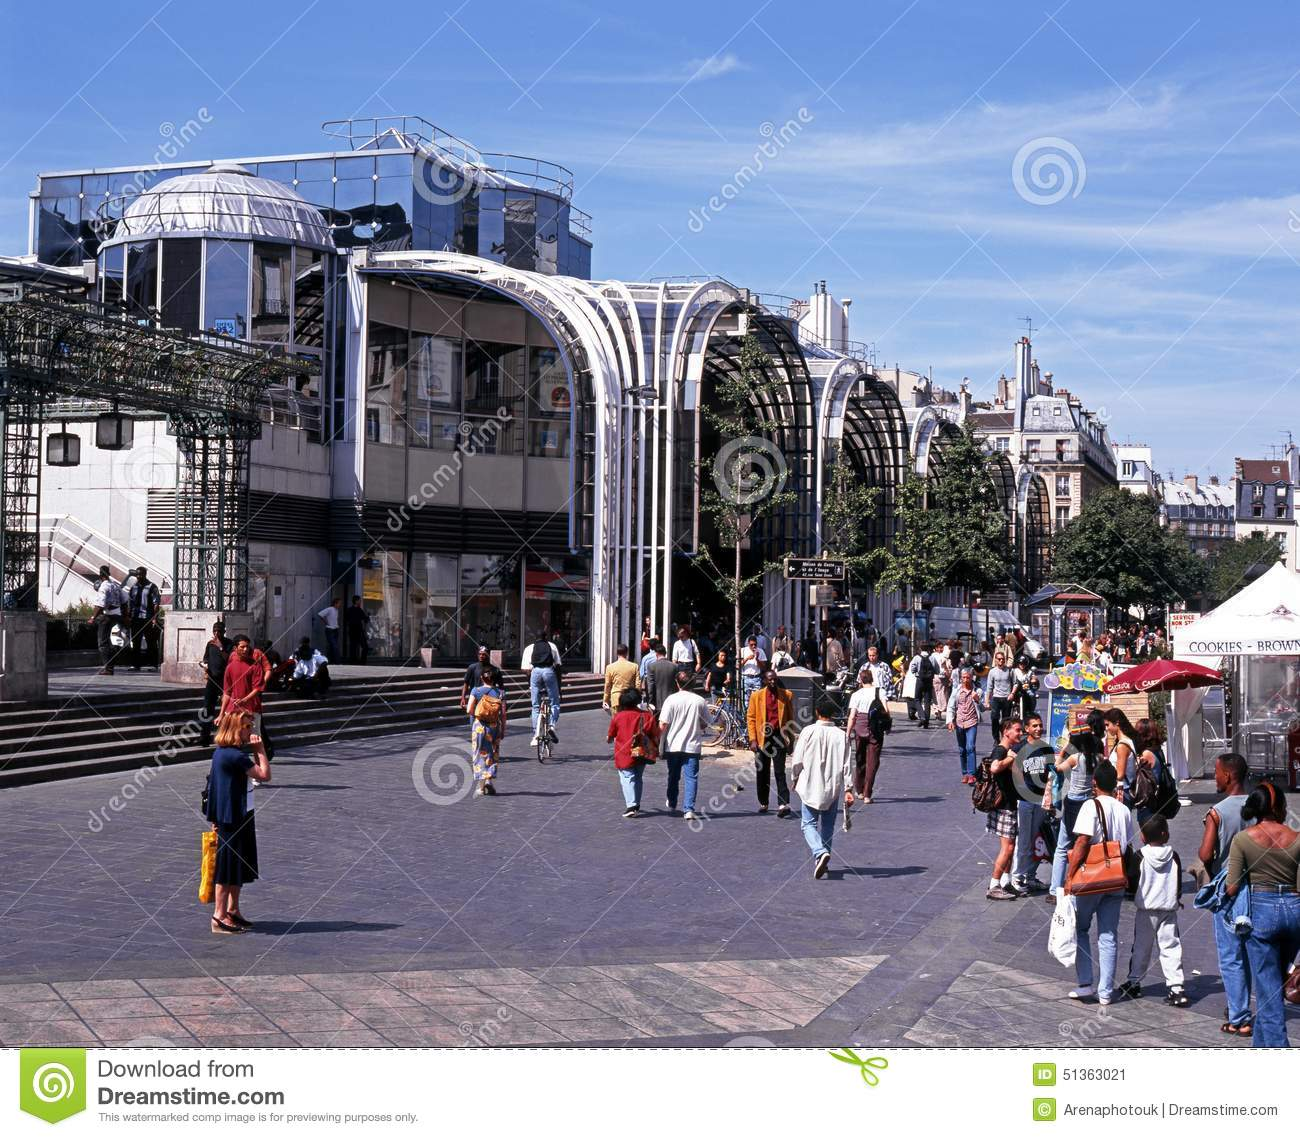 Les halles de paris shopping centre editorial photo image 51363021 - Les halles paris shopping ...